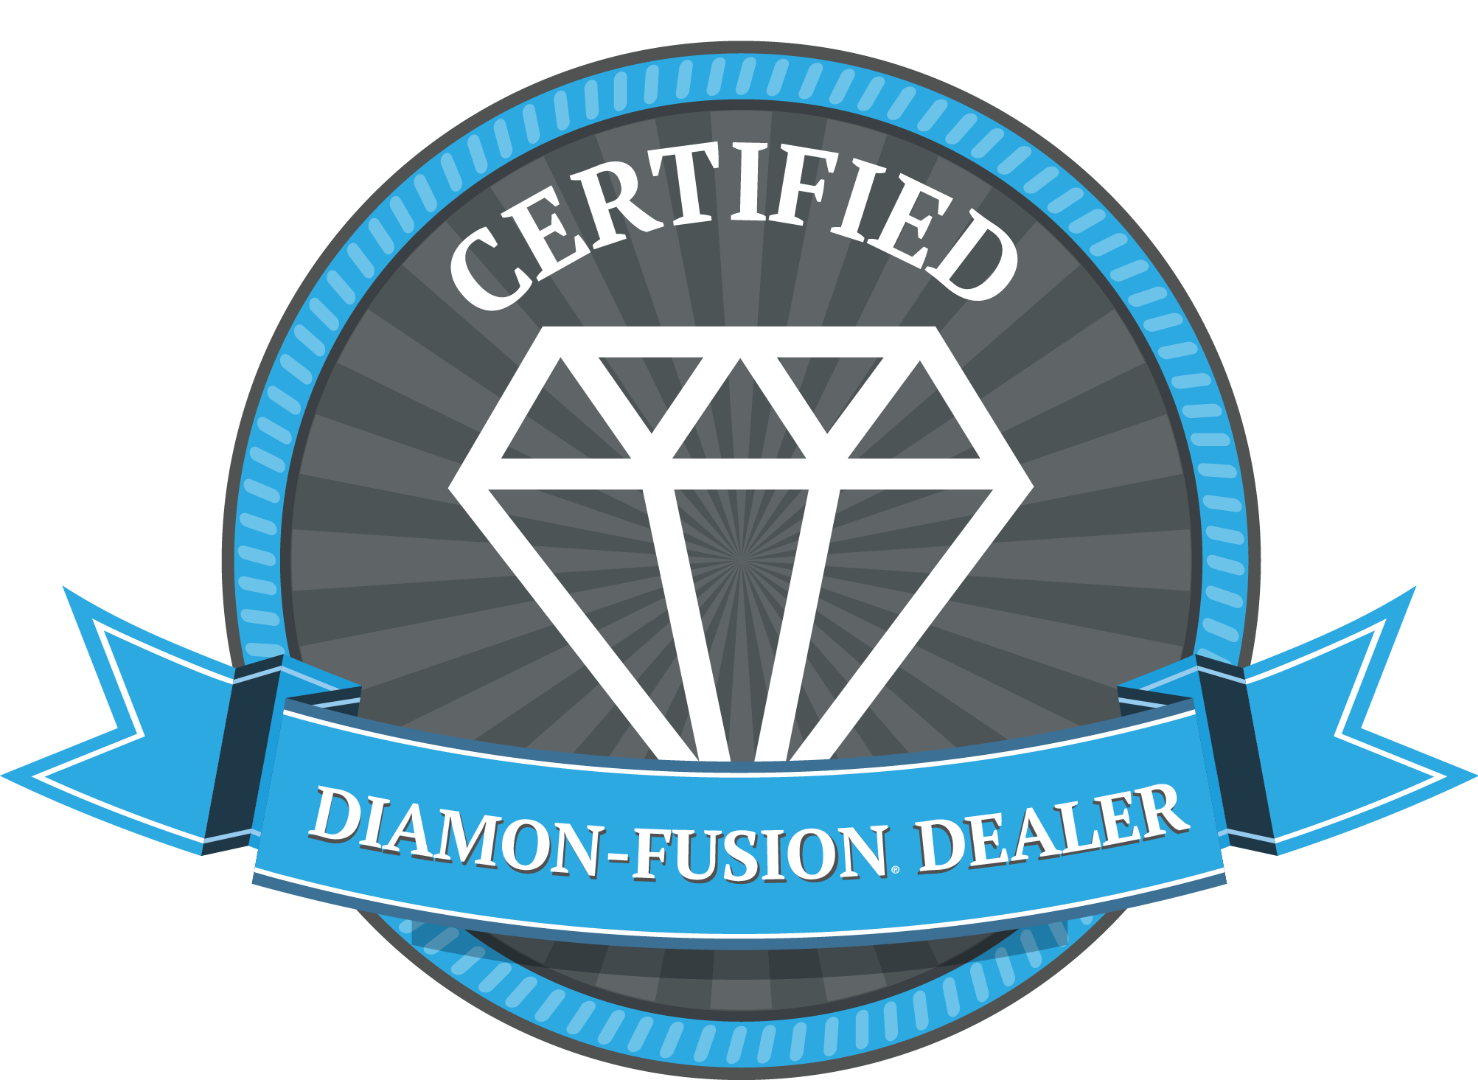 CDFDP_Certified Dealer_logo.png